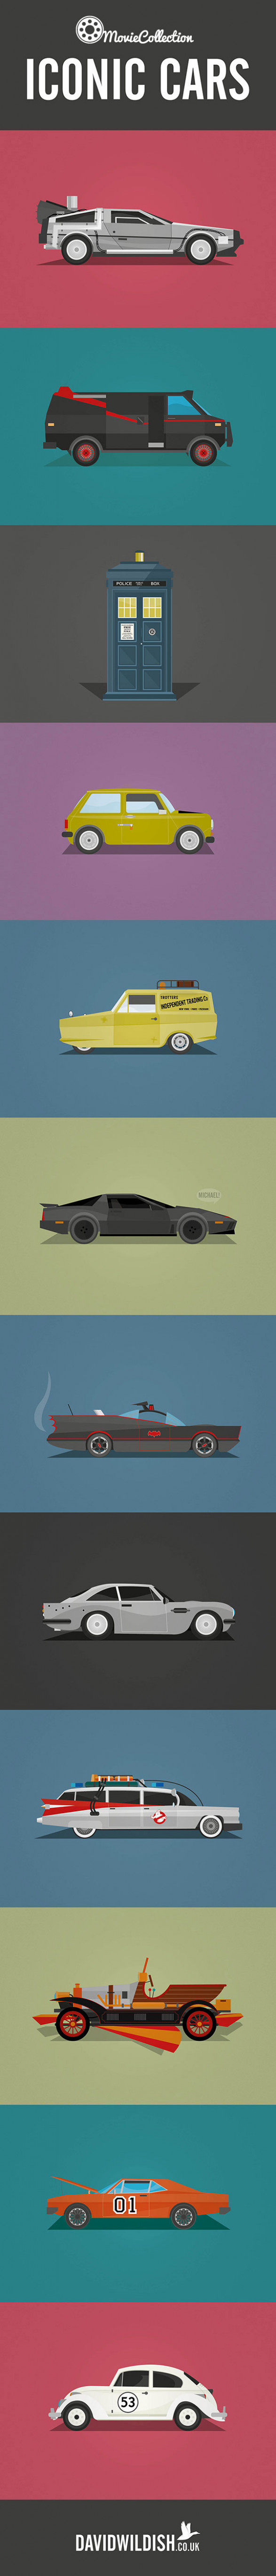 Movie & Television - Iconic Cars